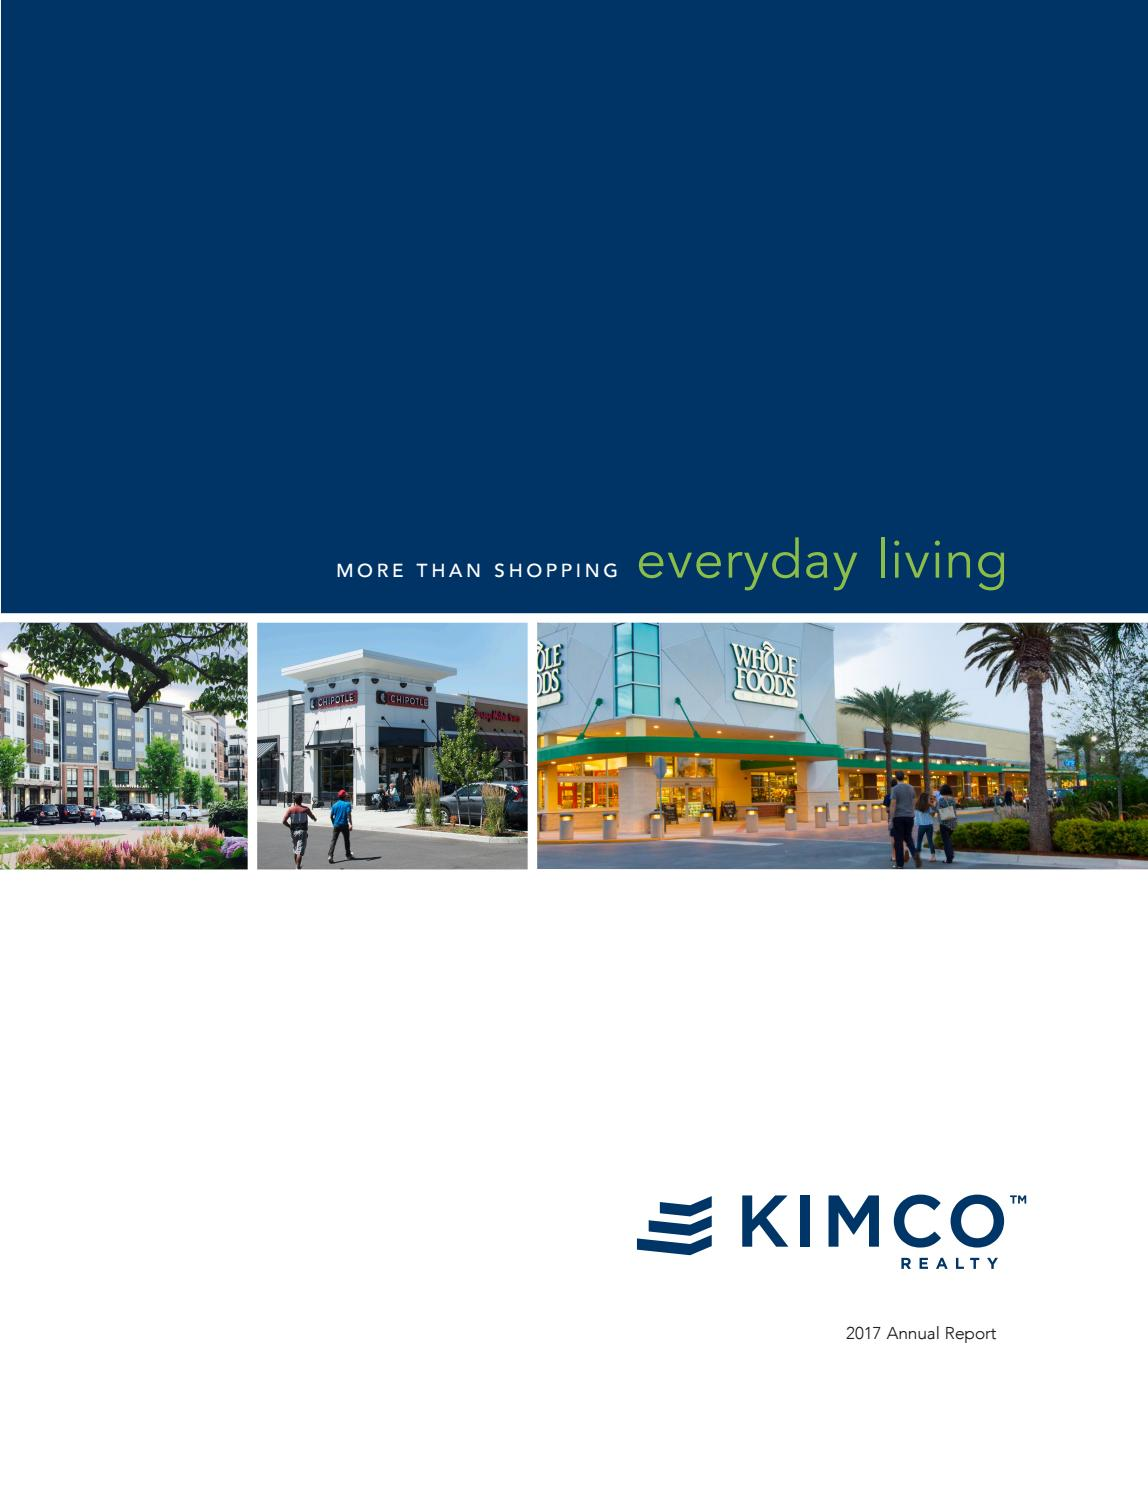 Kimco Realty 2017 Annual Report by Latitude Design - issuu